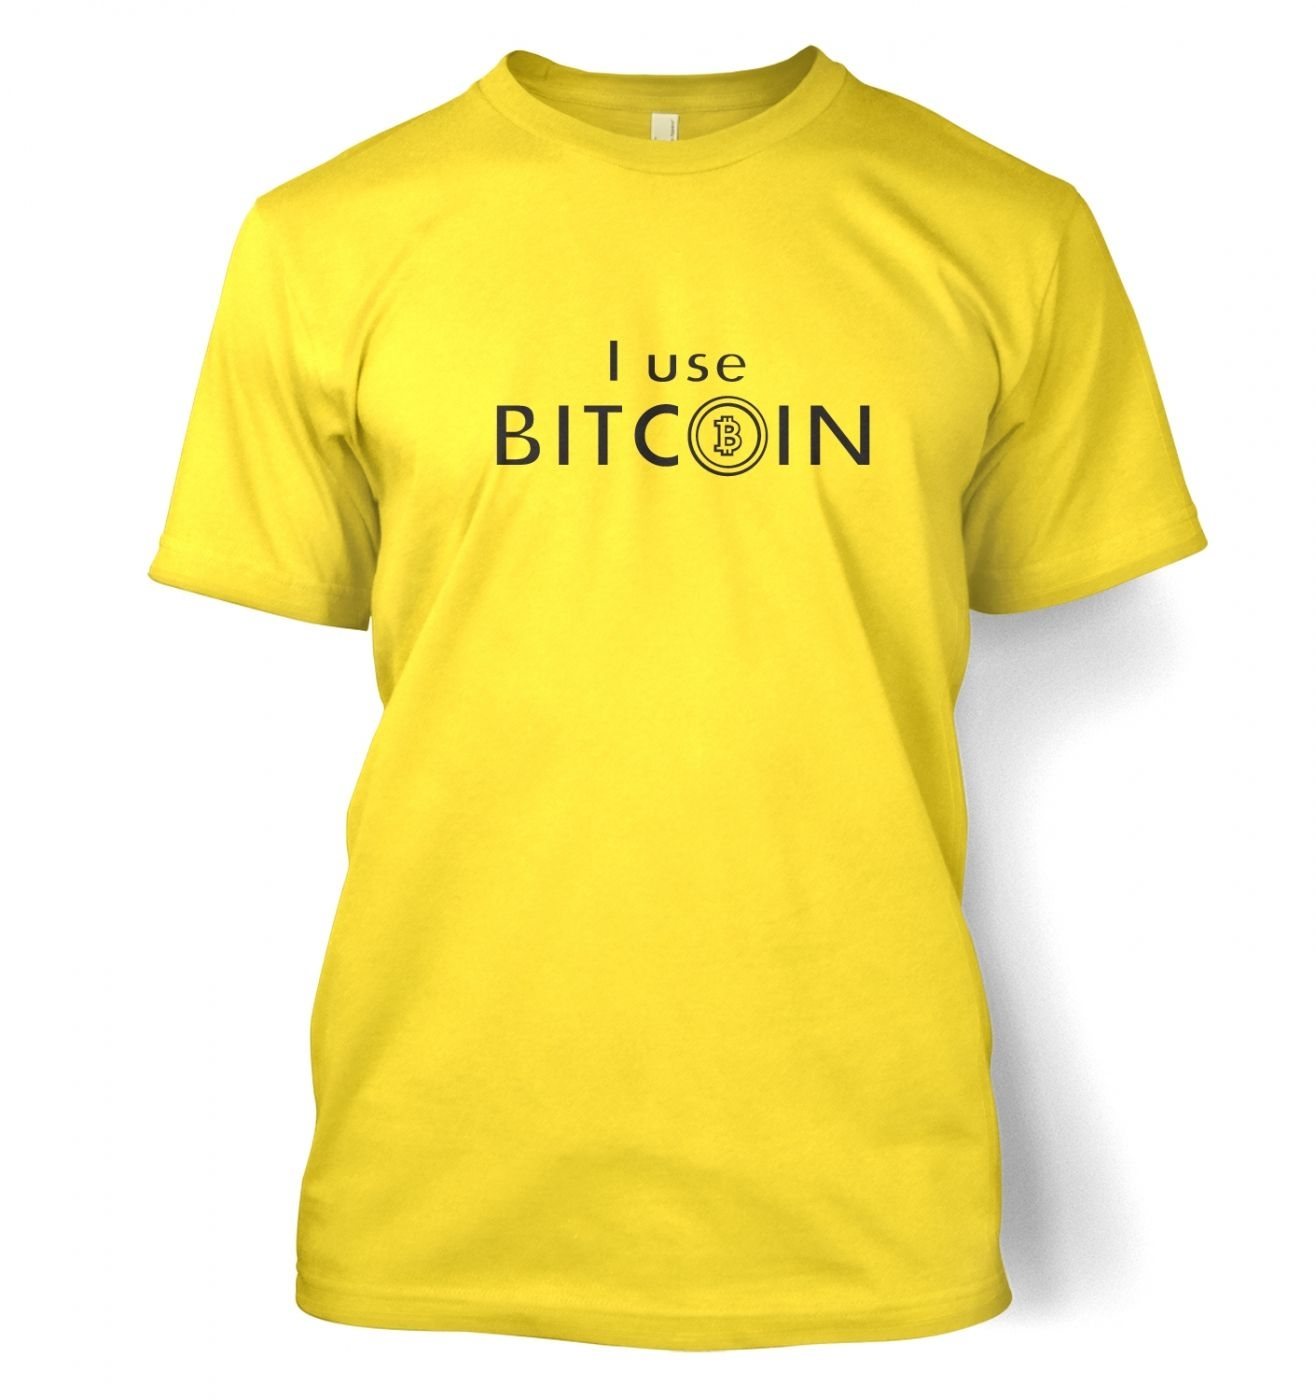 I Use Bitcoin t-shirt